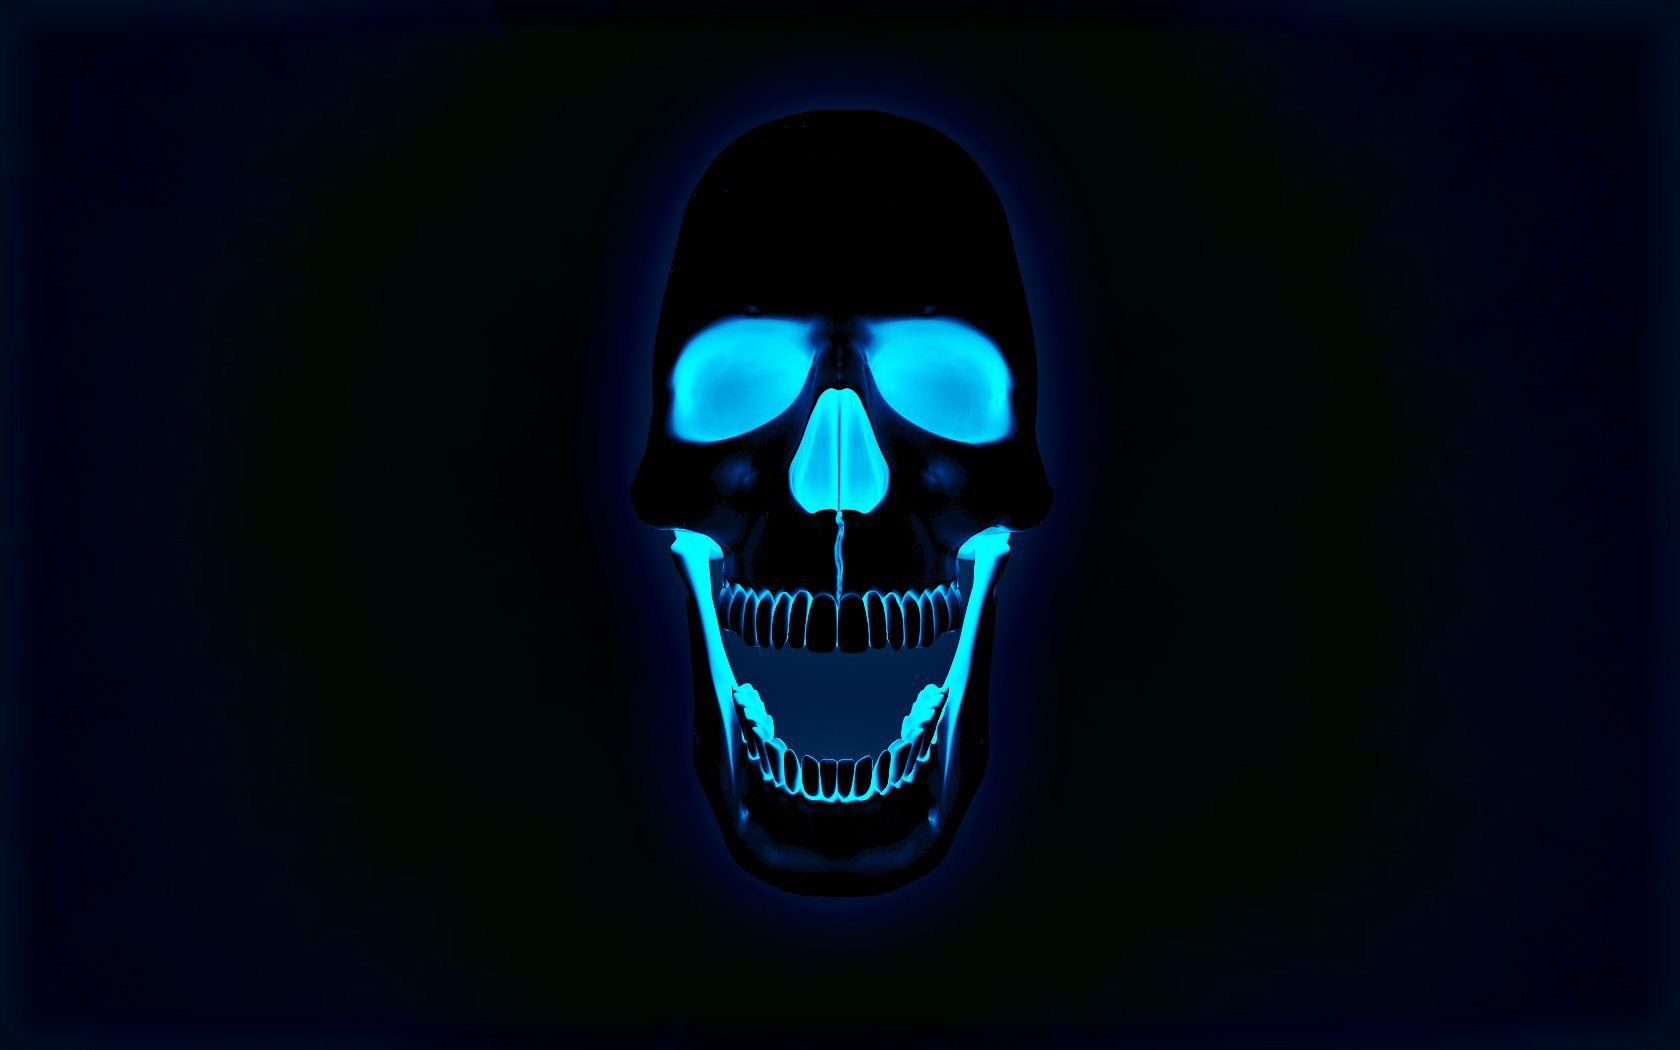 Dark Skull Wallpaper HD 5095 Wallpaper Cool Walldiskpapercom 1680x1050